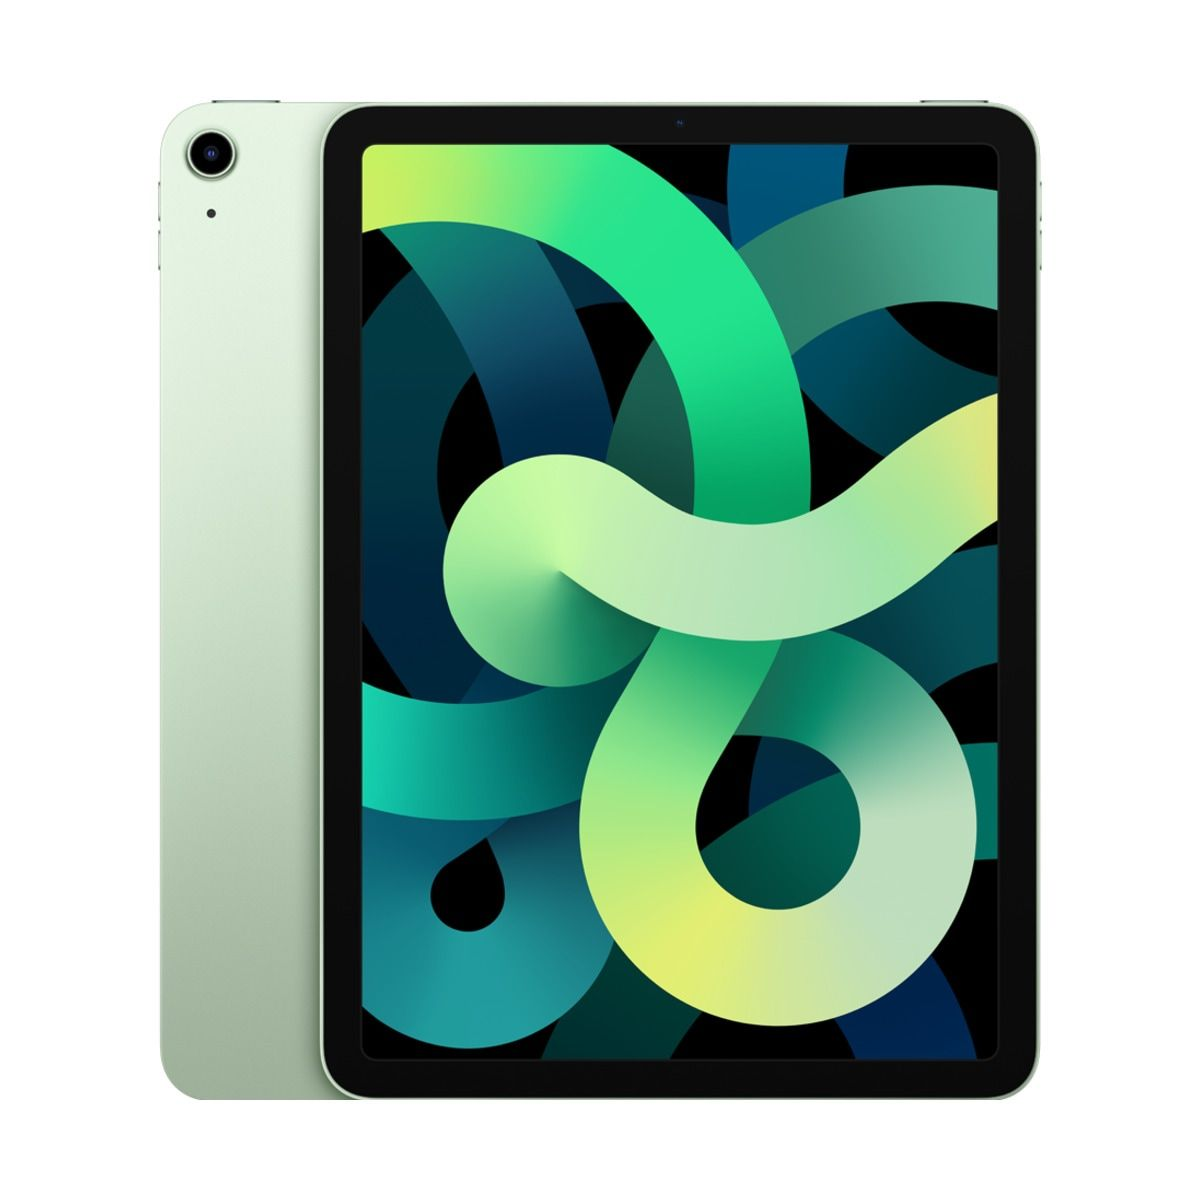 iPad Air Wi-Fi+Cell 64GB - Green